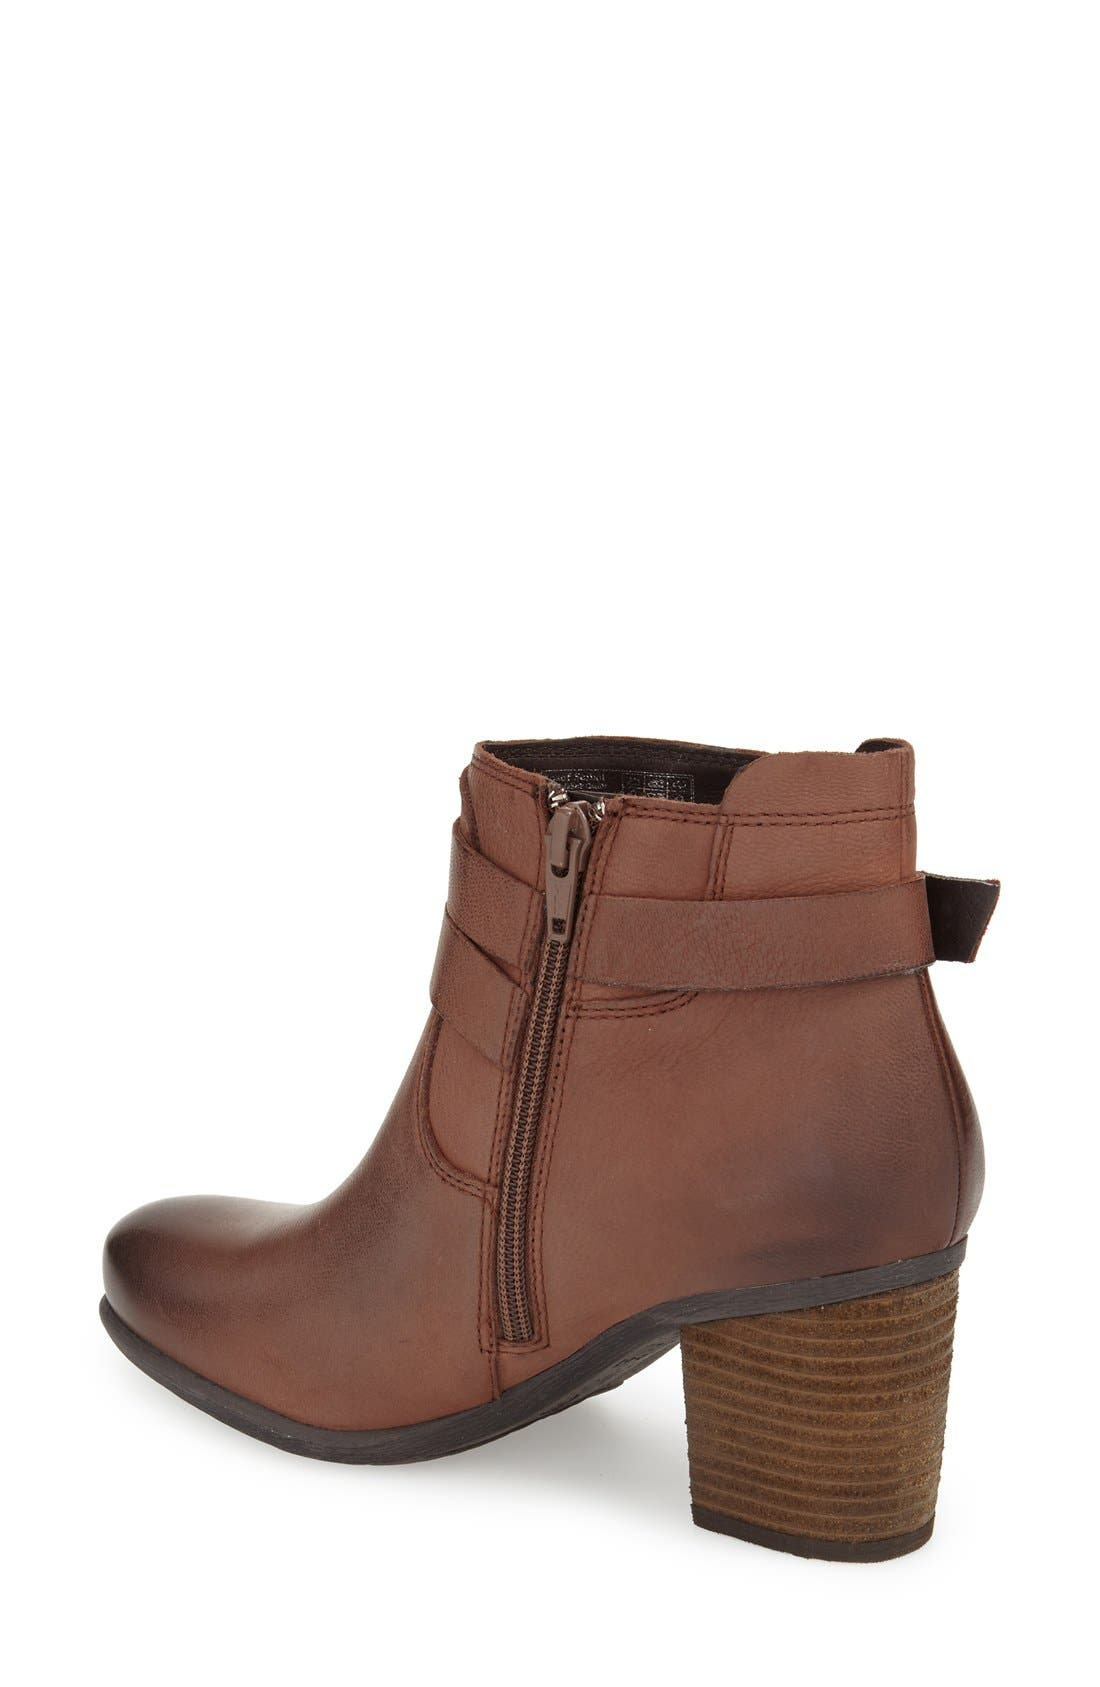 Alternate Image 2  - Josef Seibel 'Britney 50' Ankle Strap Bootie (Women)